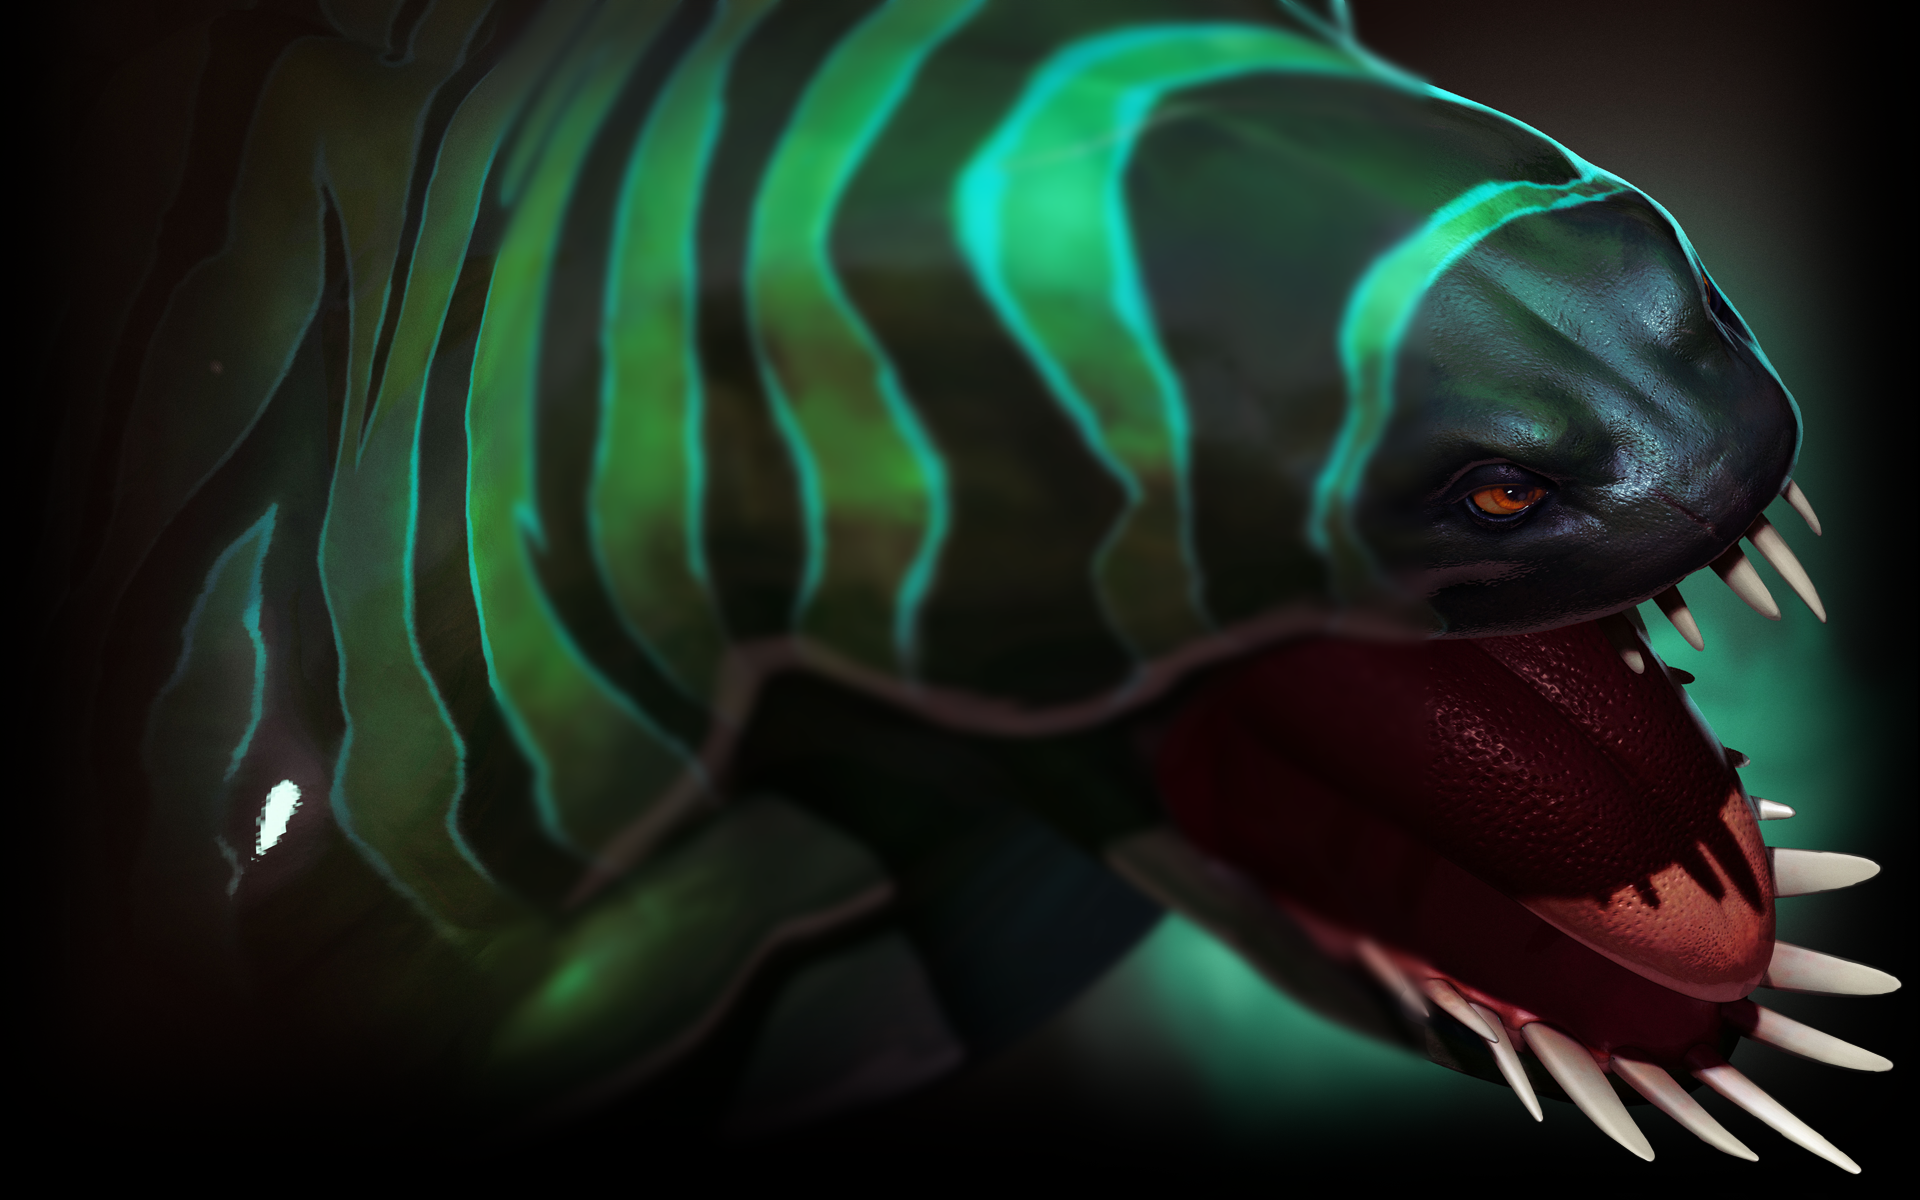 image dota 2 background tidehunter png steam trading cards